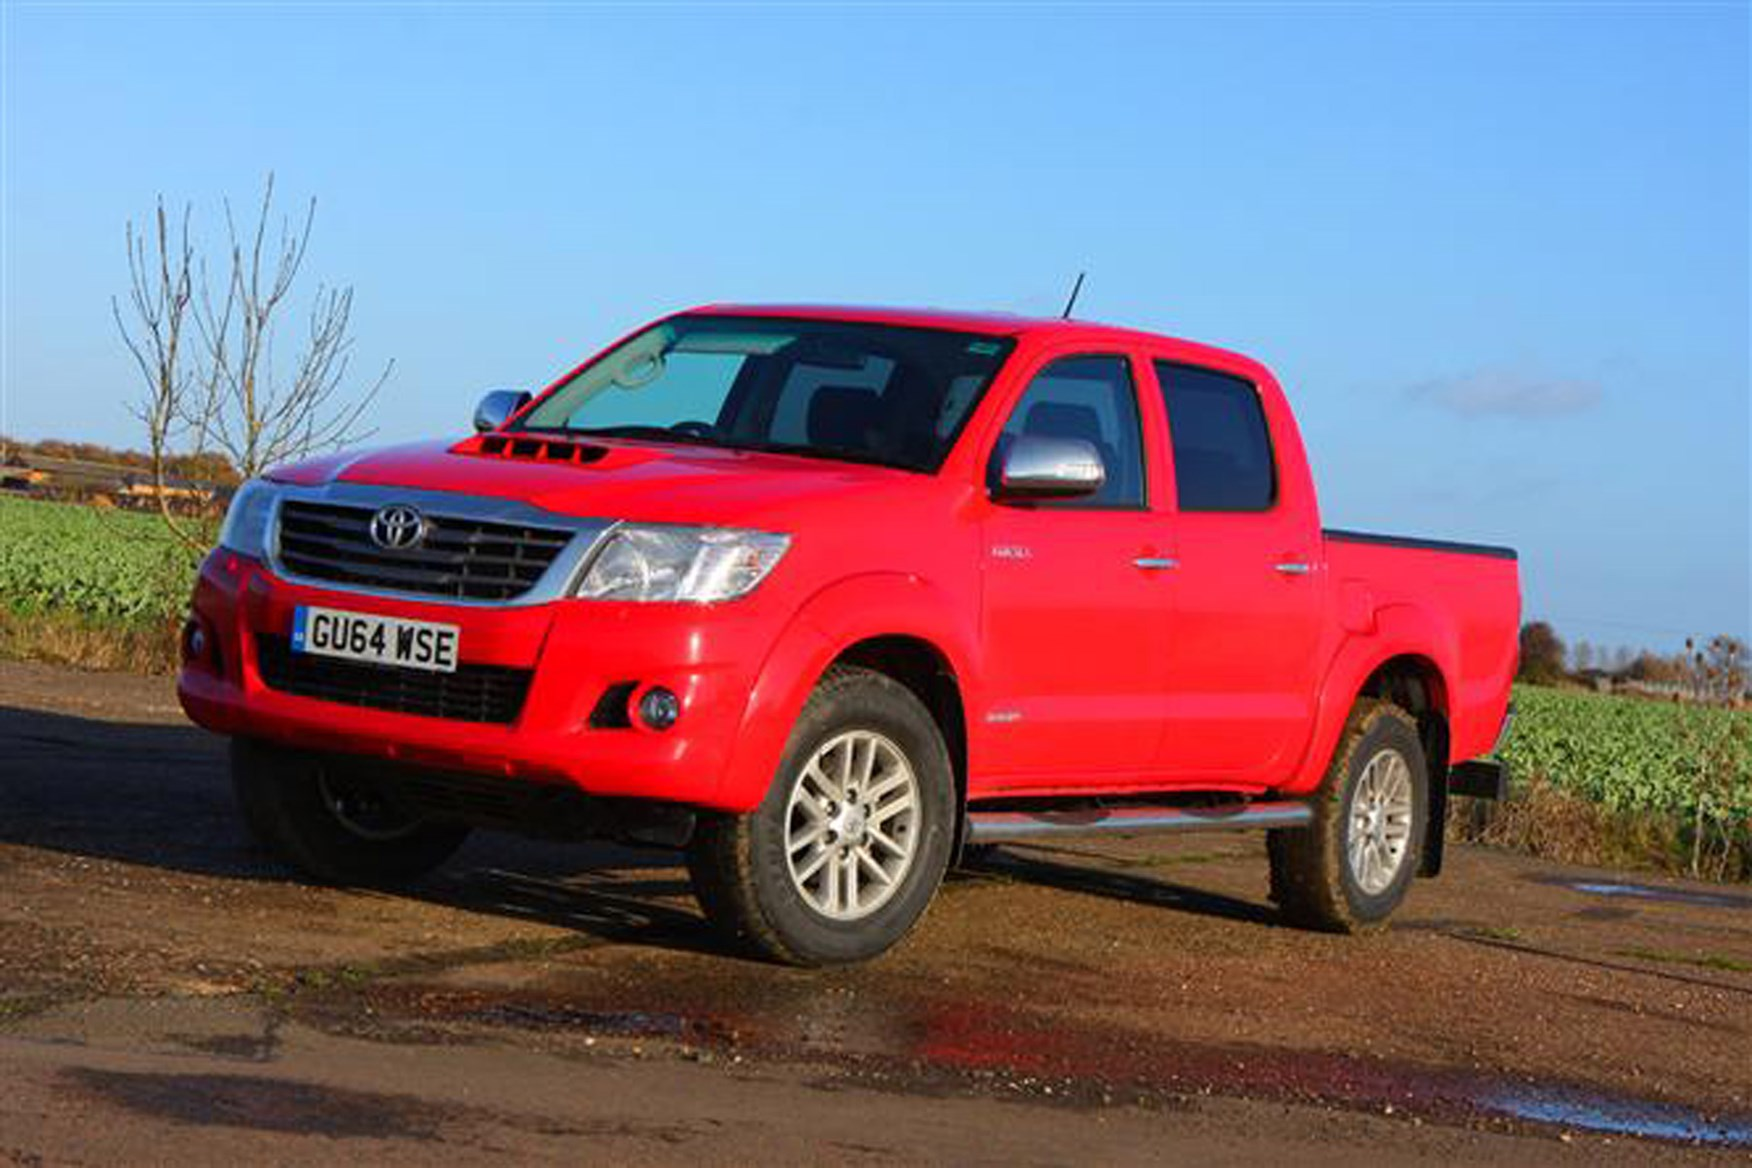 Toyota Hilux review on Parkers Vans - exterior